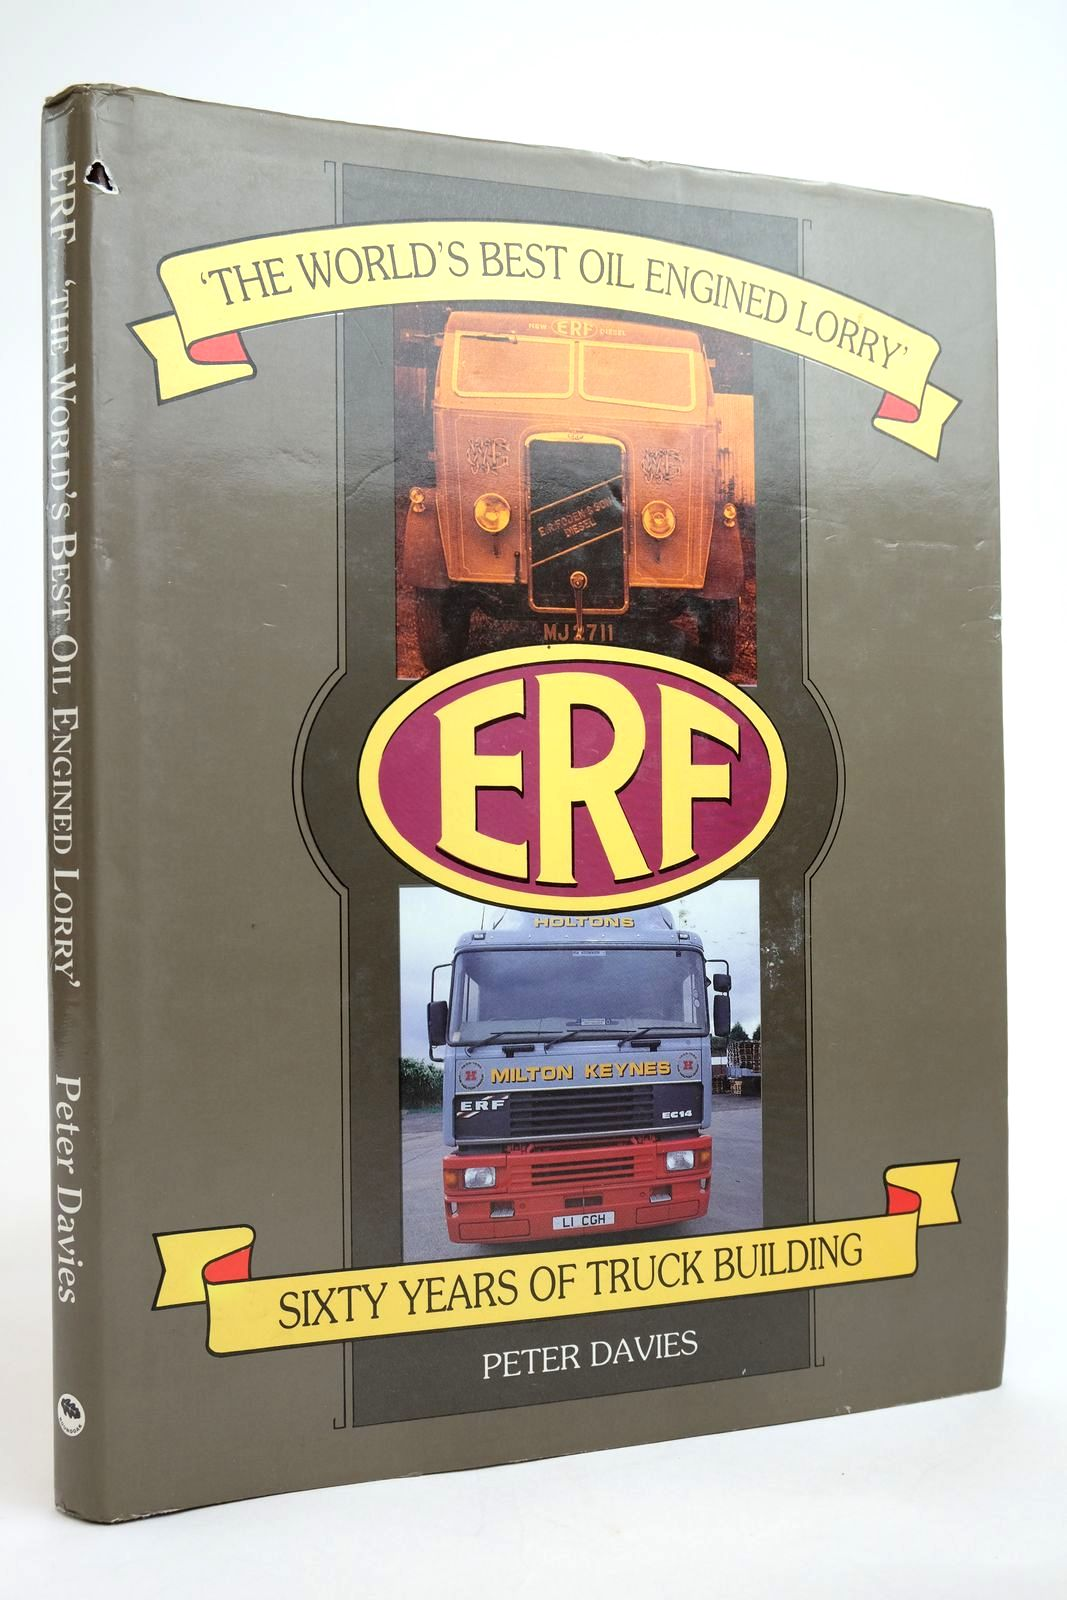 Photo of ERF 'THE WORLD'S BEST OIL ENGINED LORRY' written by Davies, Peter published by Roundoak Publishing (STOCK CODE: 2135025)  for sale by Stella & Rose's Books